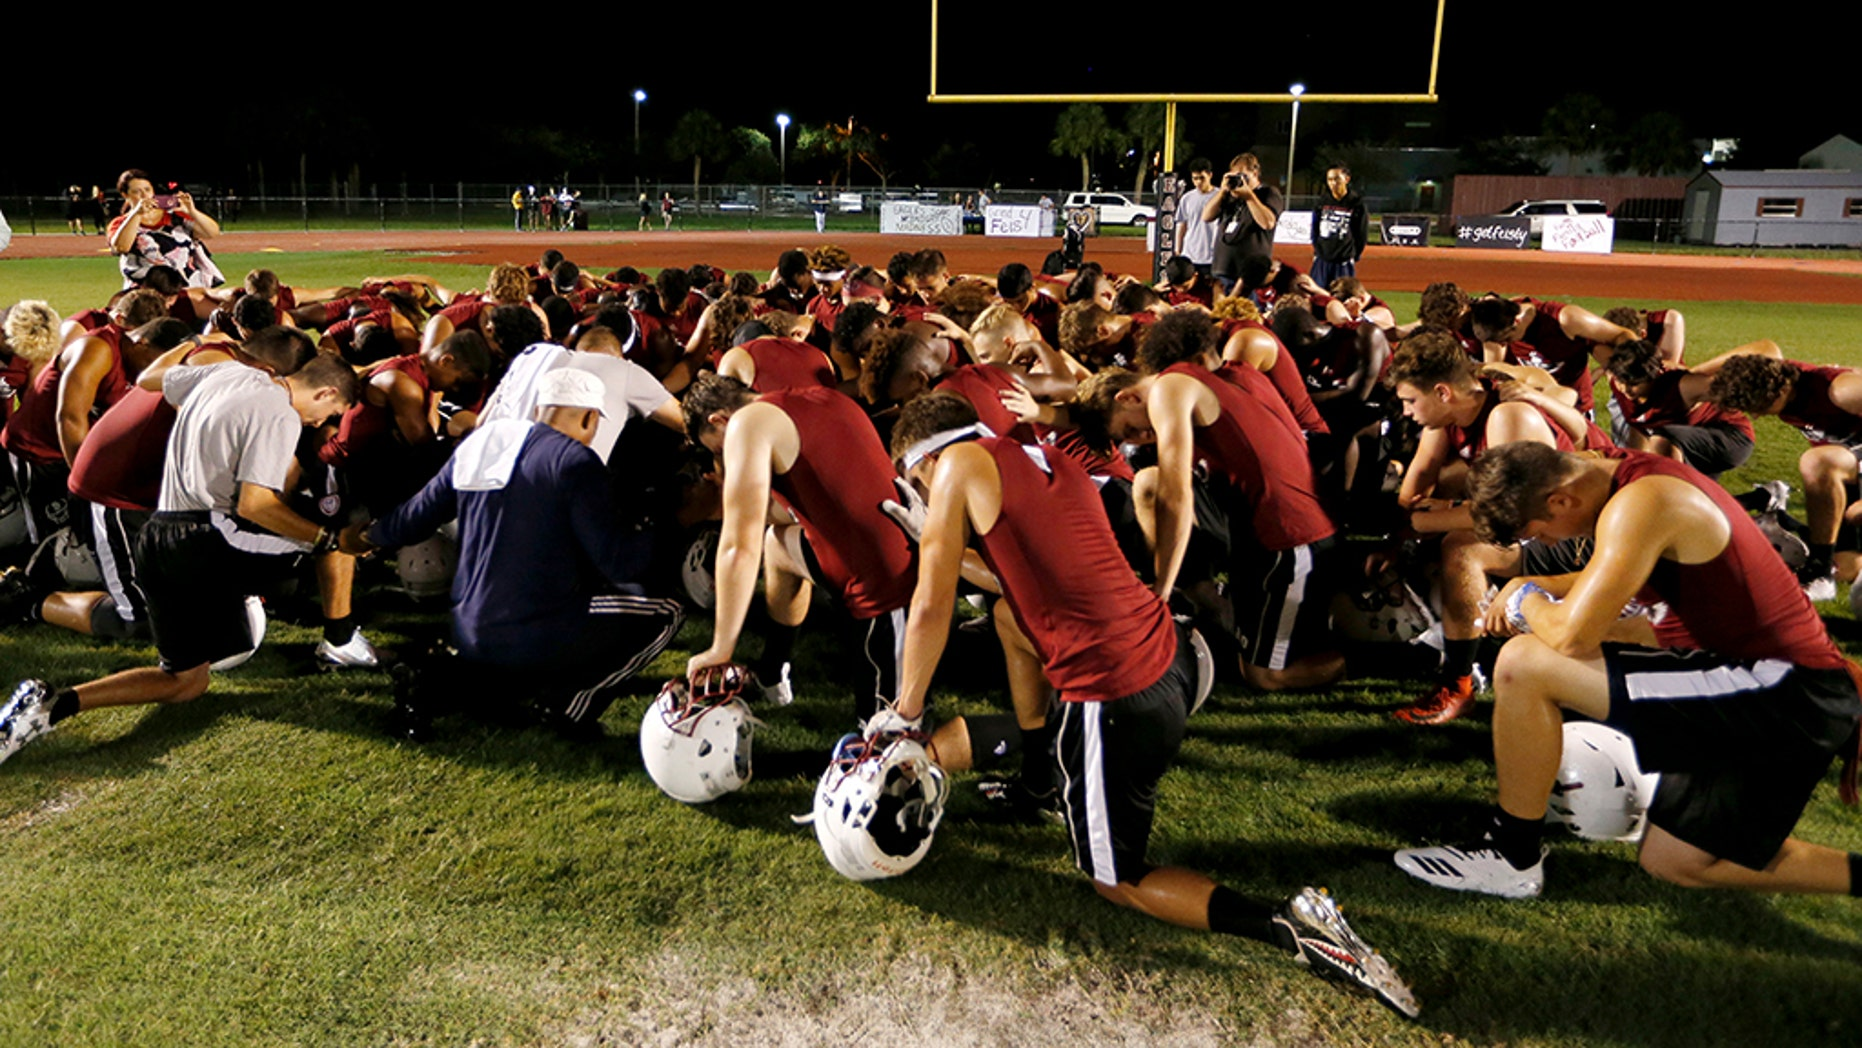 Members of the Marjory Stoneman Douglas High School football team prayed together as they started practice for a new season just after midnight on Monday.